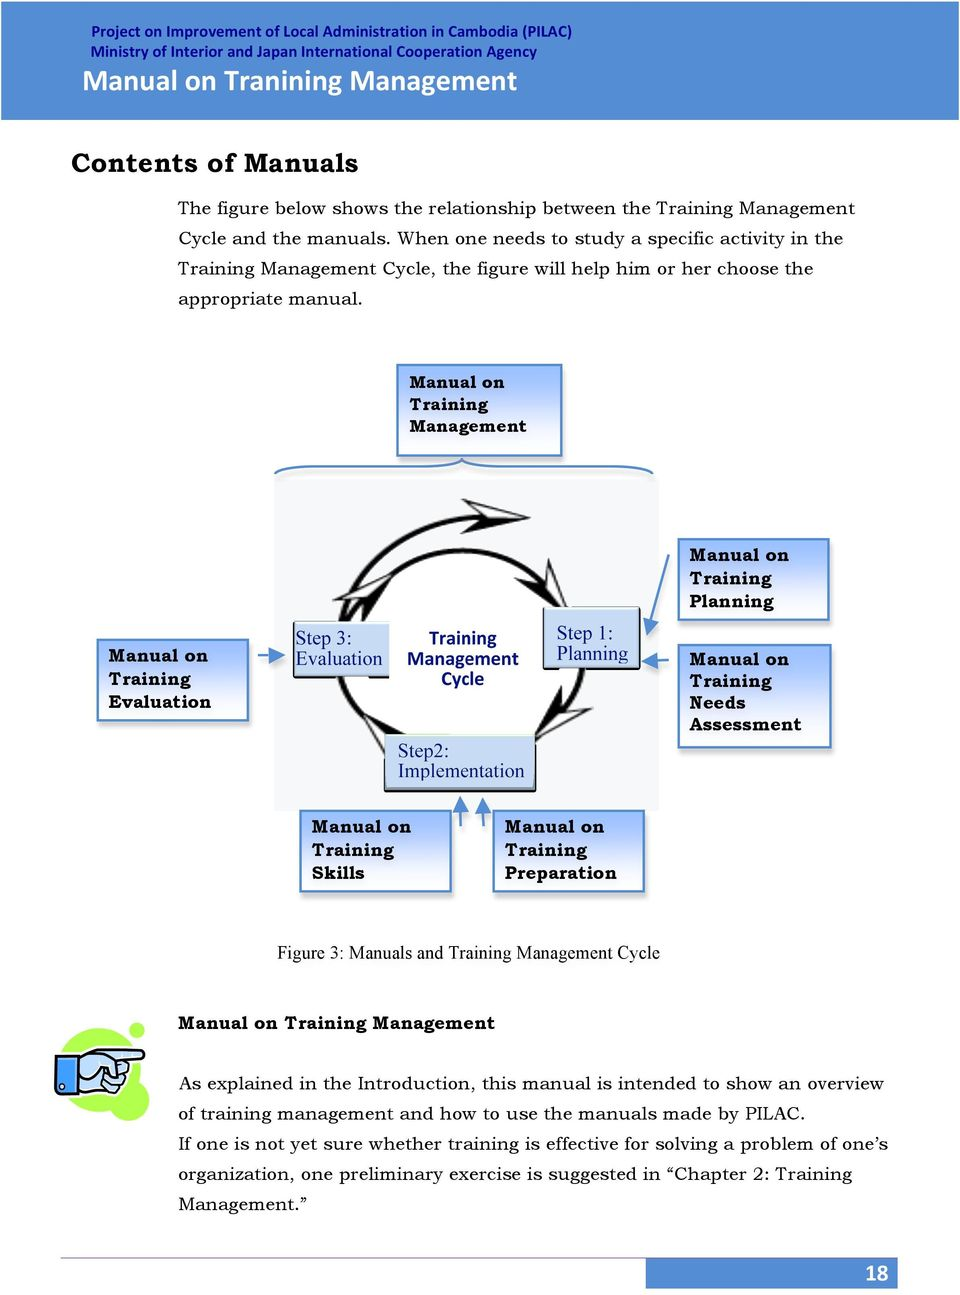 Manual on Training Management Manual on Training Planning Manual on Training Evaluation Manual on Training Needs Assessment Manual on Training Skills Manual on Training Preparation Figure 3: Manuals